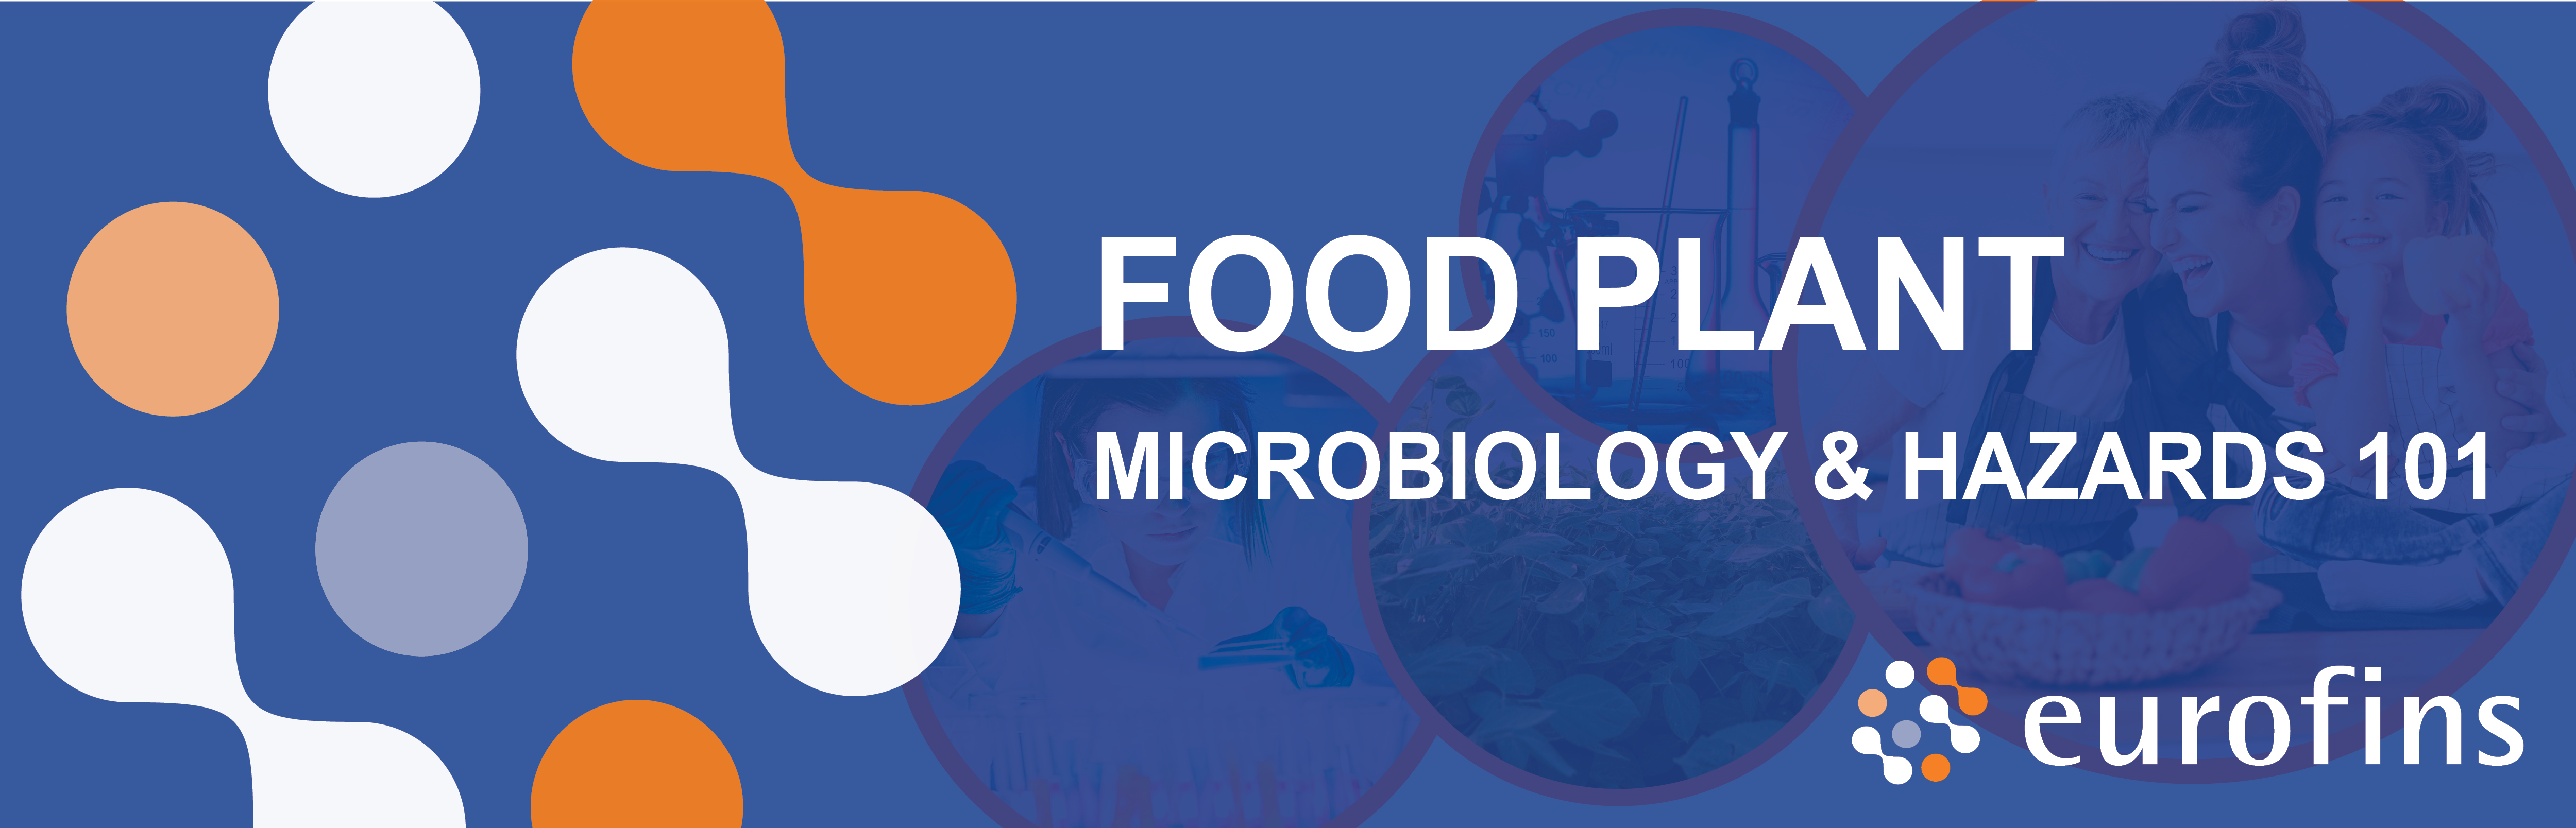 Food Plant Microbiology & Hazards 101